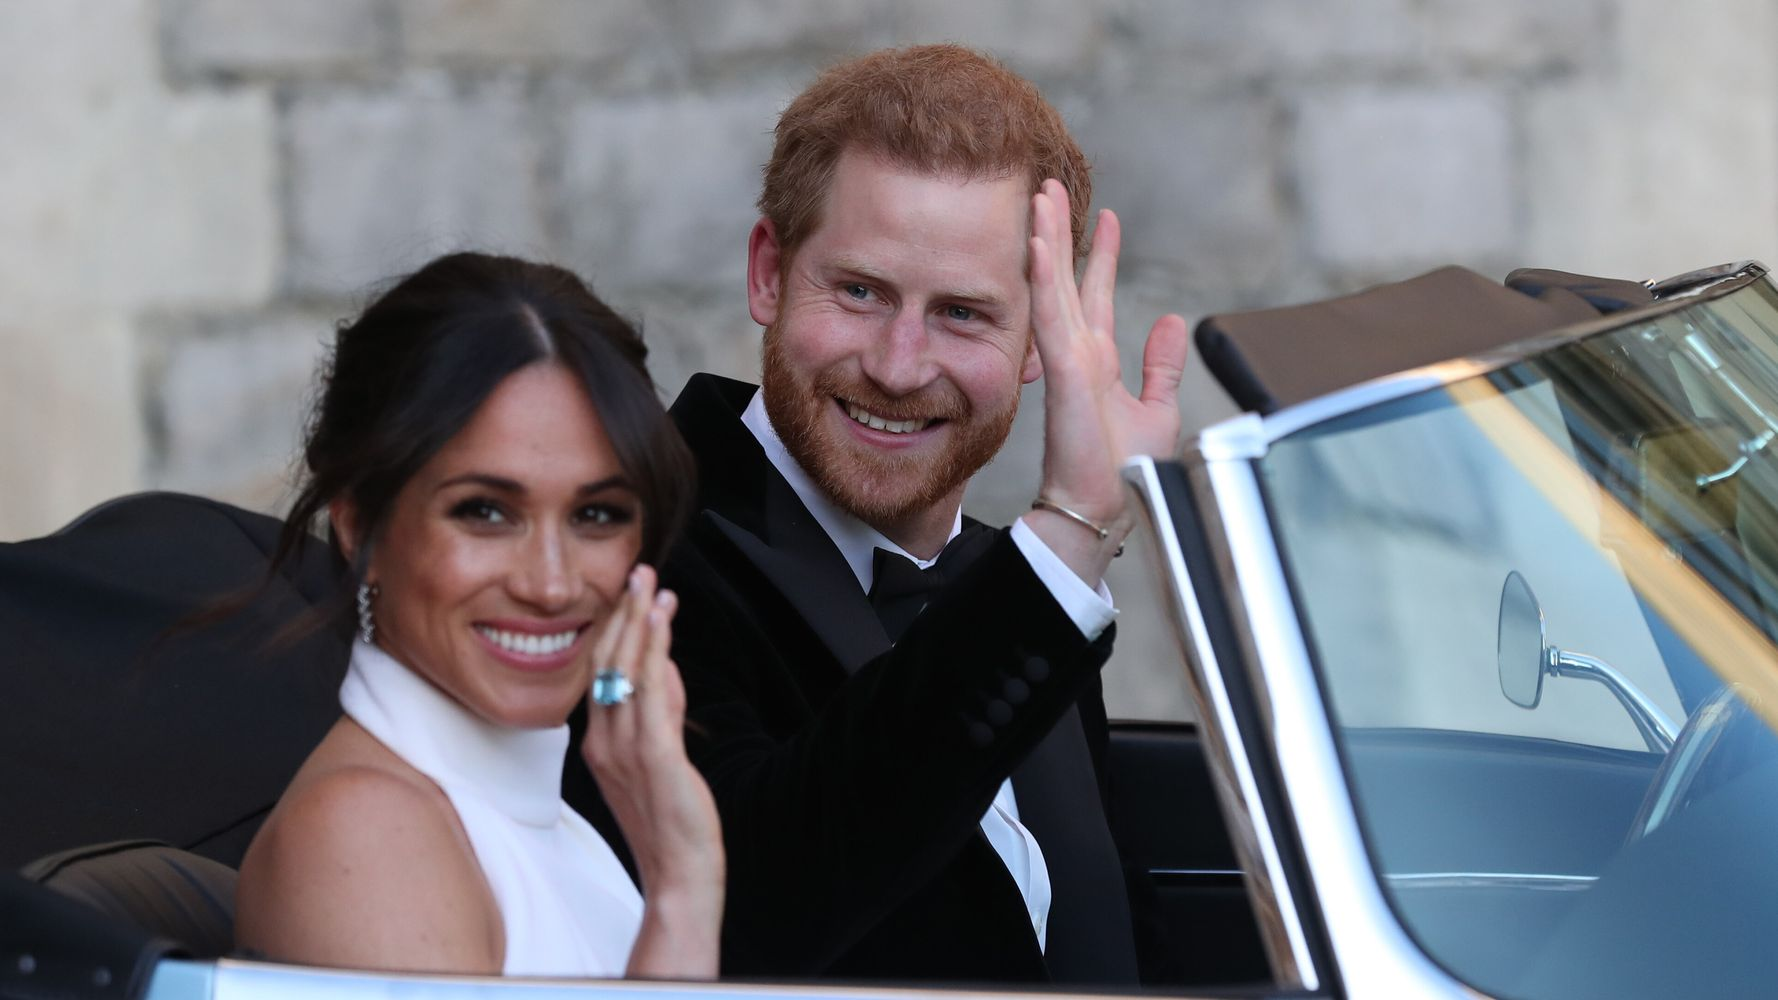 Do Canadians Care About Harry And Meghan's Move To Canada? You Tell Us